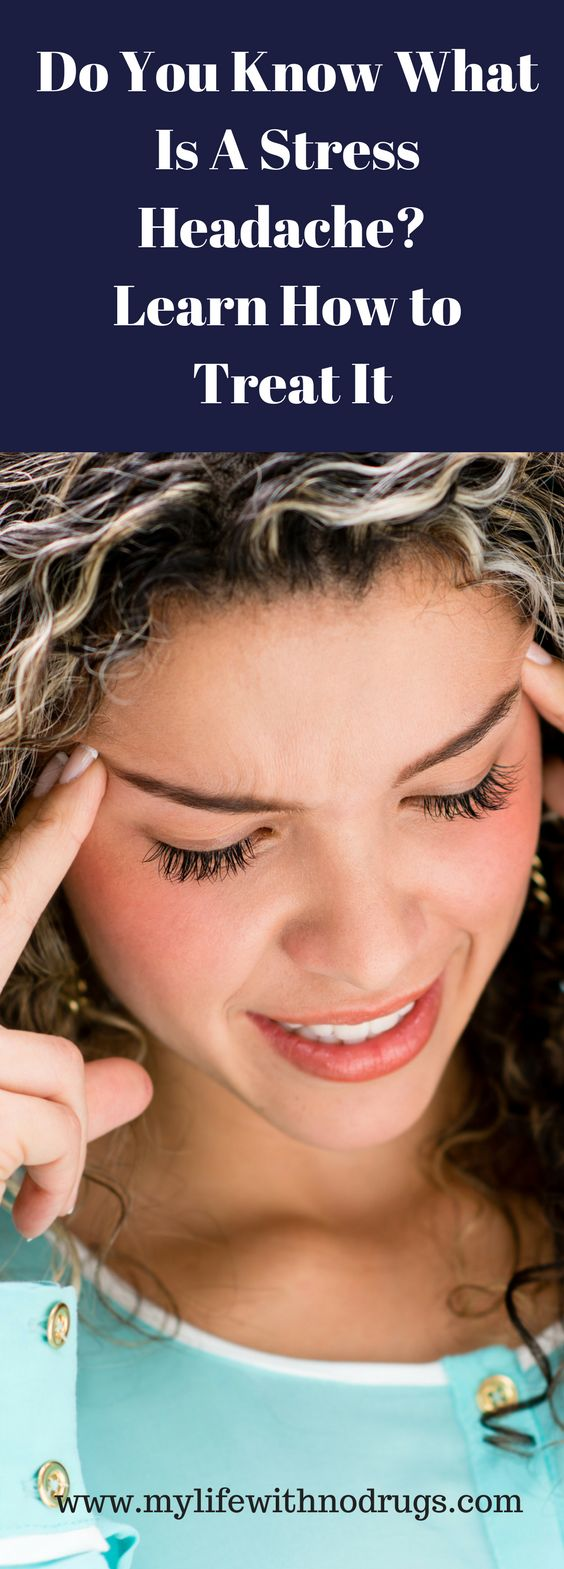 What Is A Stress Headache? Learn How to Threat It #Stress #StressHeadache #Headache